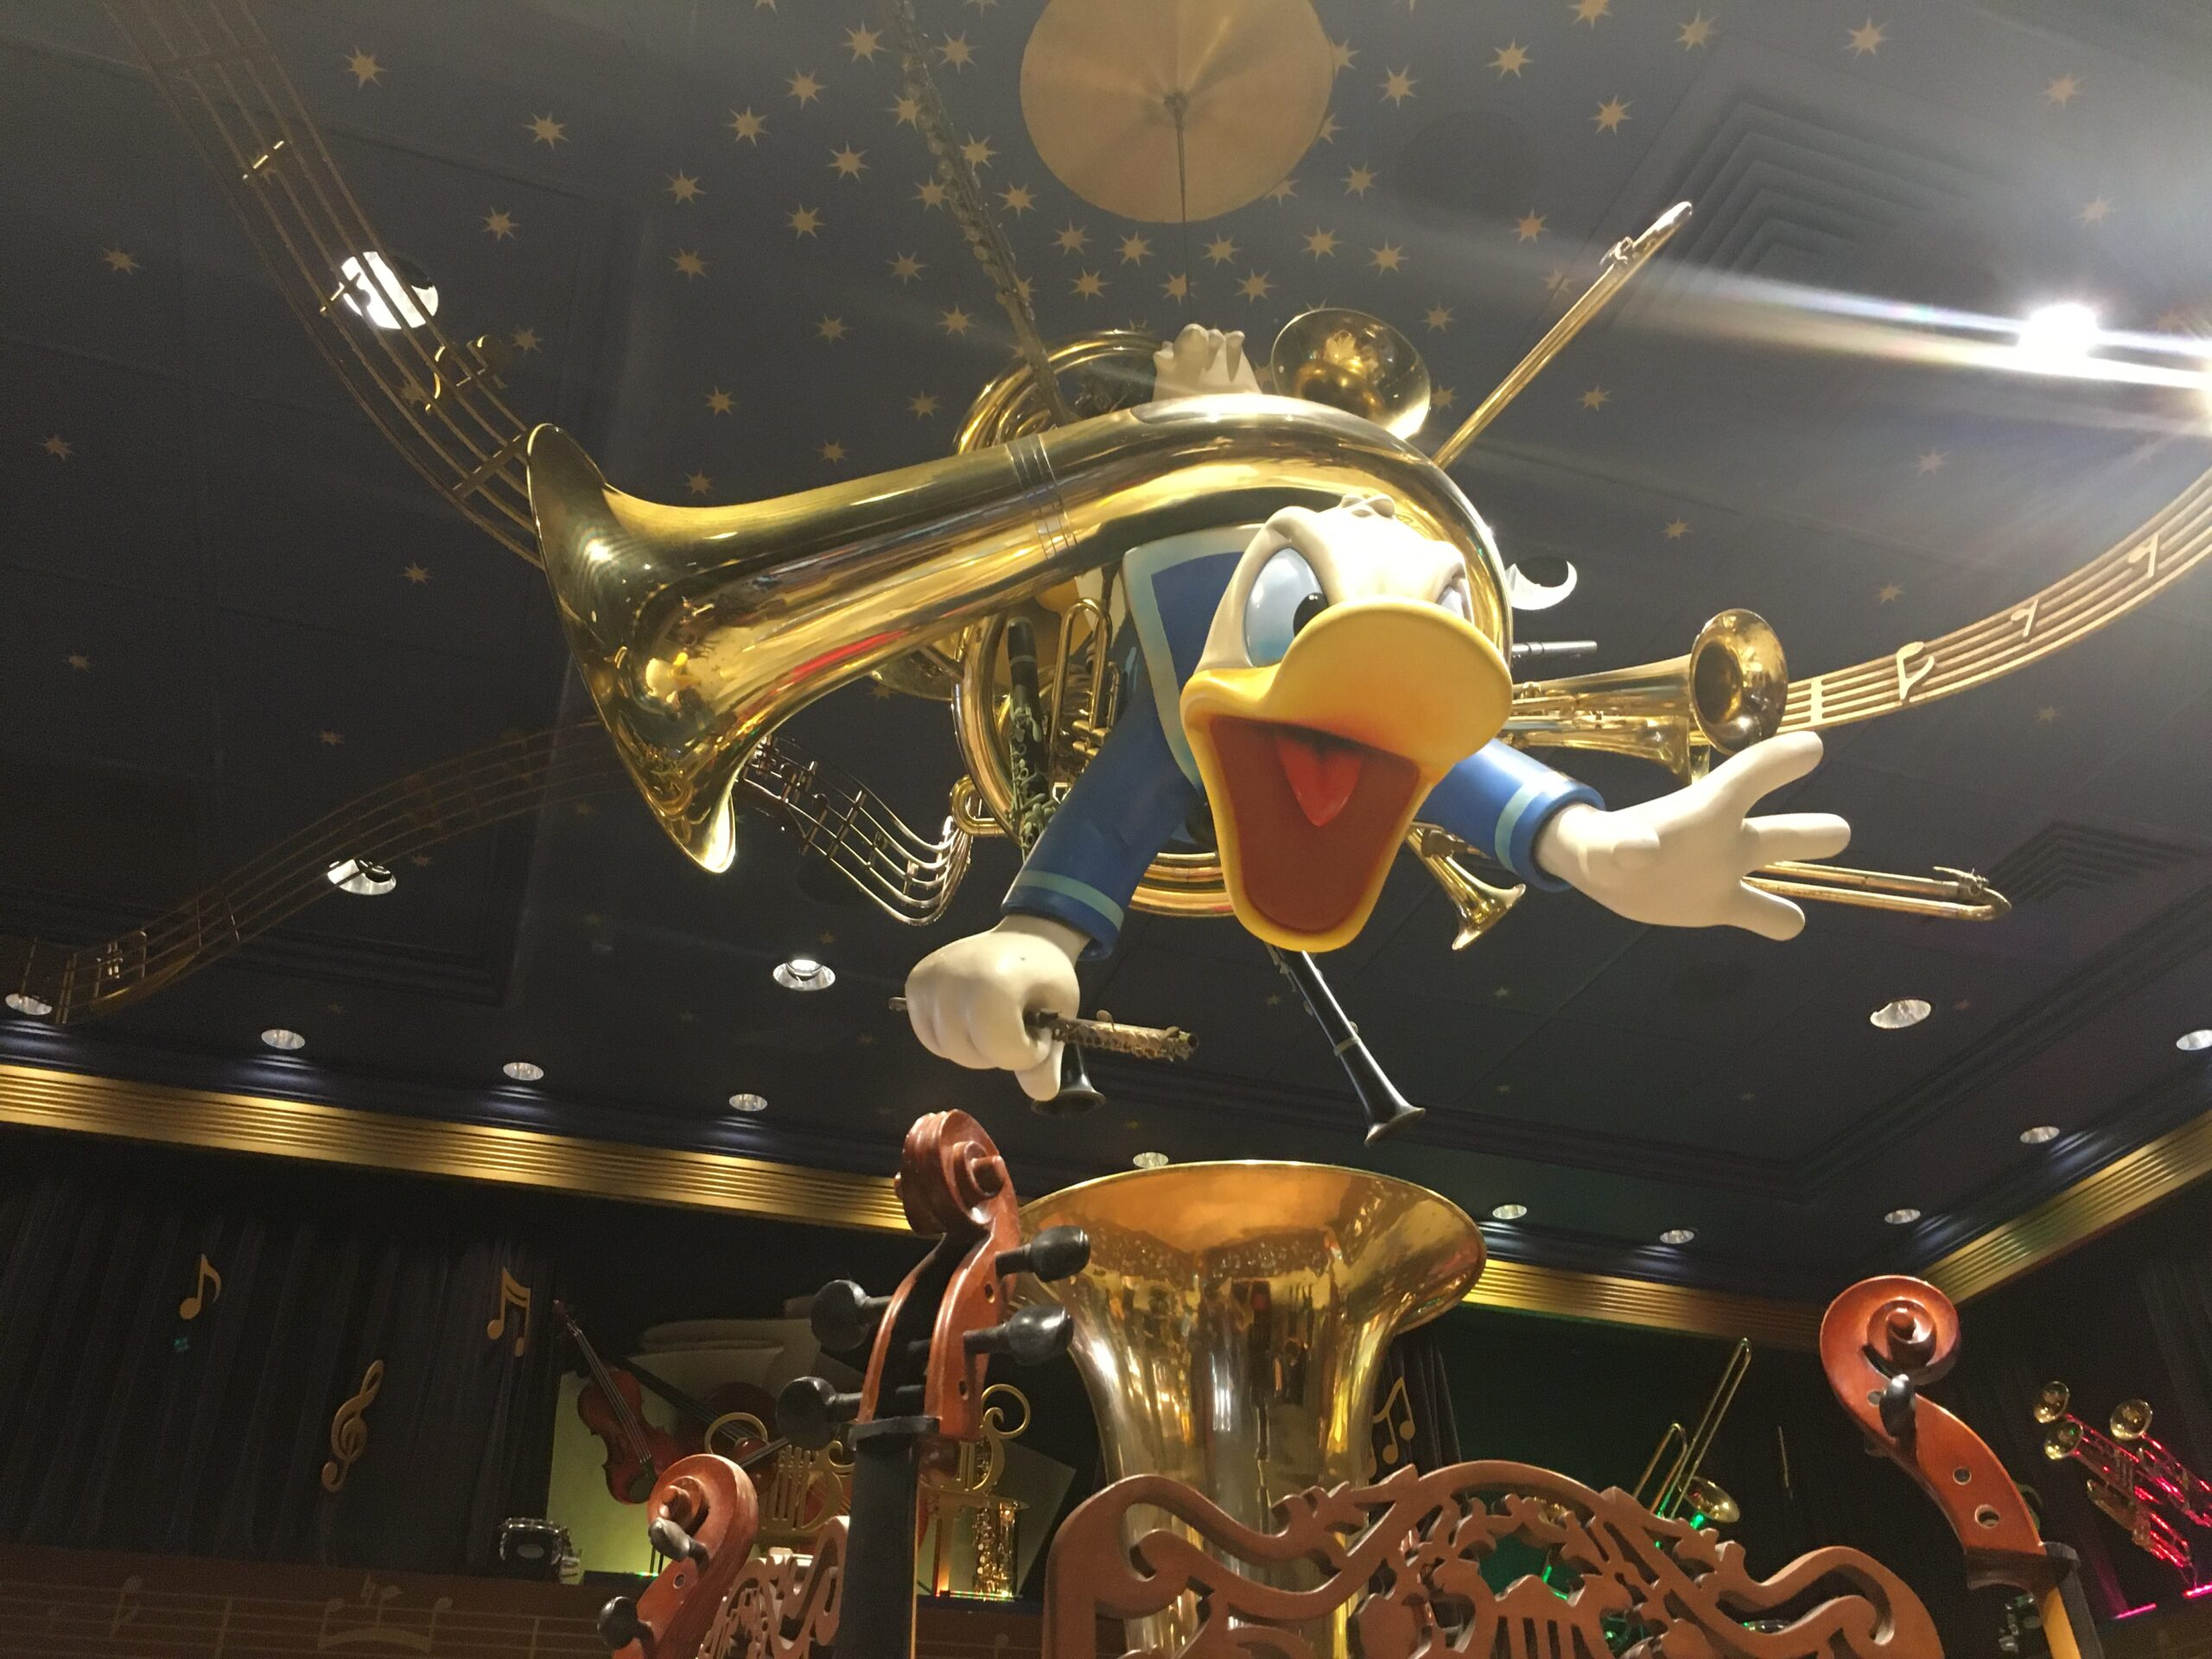 donald duck in a trombone at Magic Kingdom's PhilharMagic, a ride to include on a Magic Kingdom itinerary